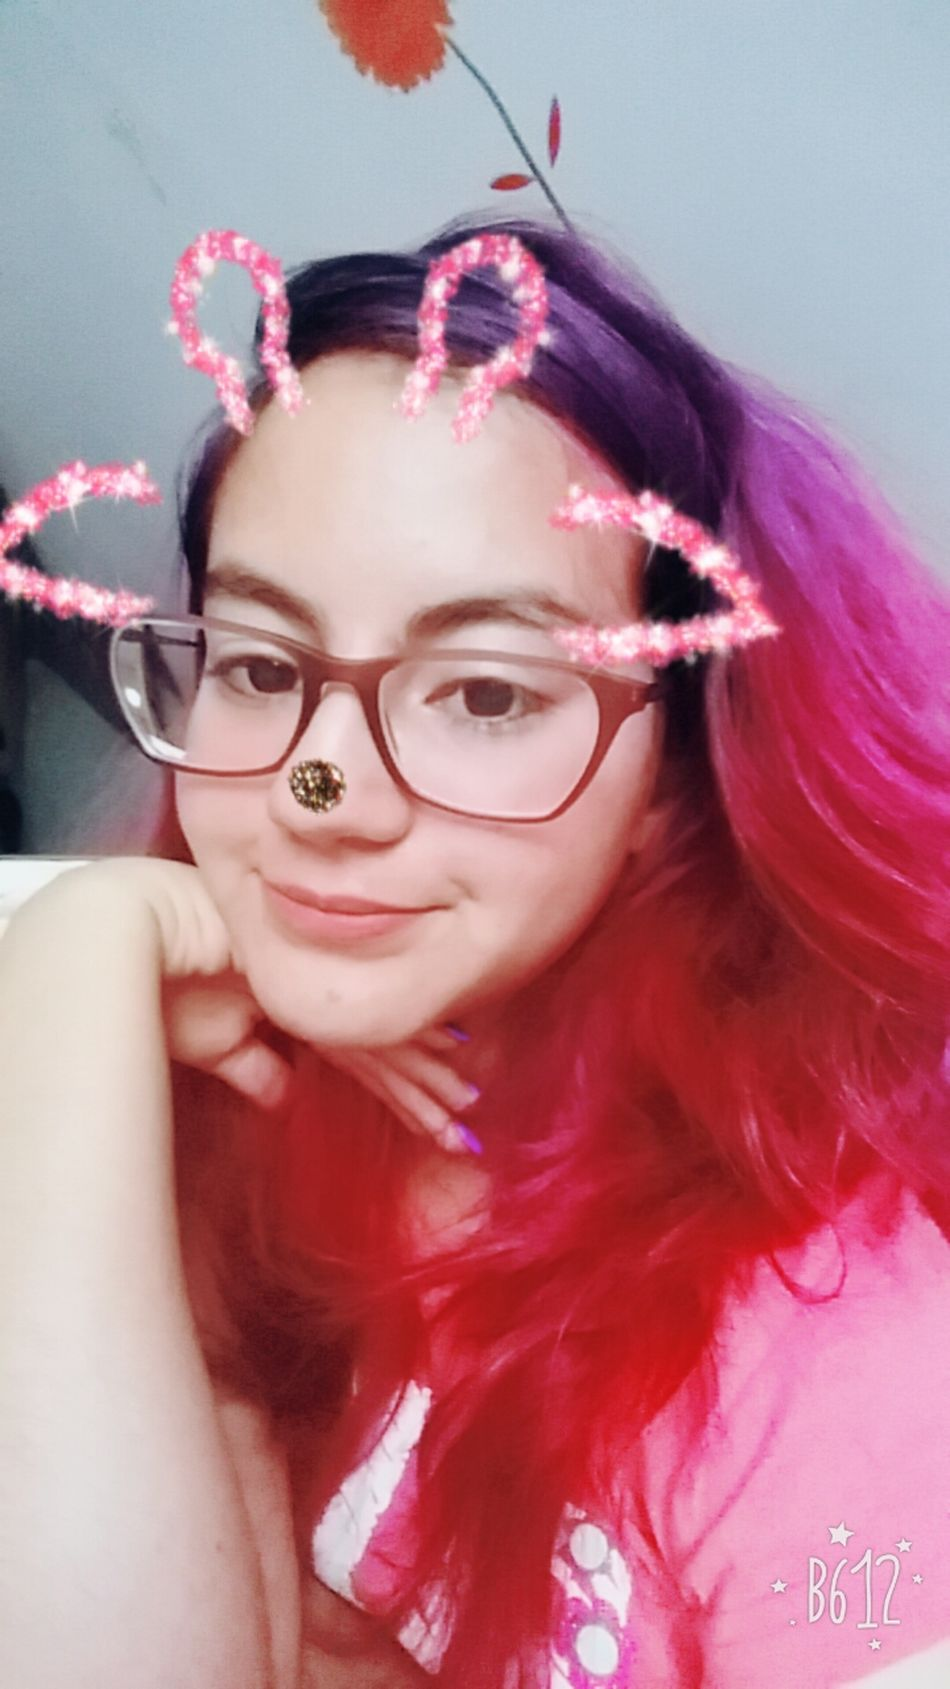 Pink Color Portrait Looking At Camera Eyeglasses  One Person Check This Out Photo Taking Photos Fucsiahair Purplehair Hairdye Hair Color Haircolor Hair Hi!